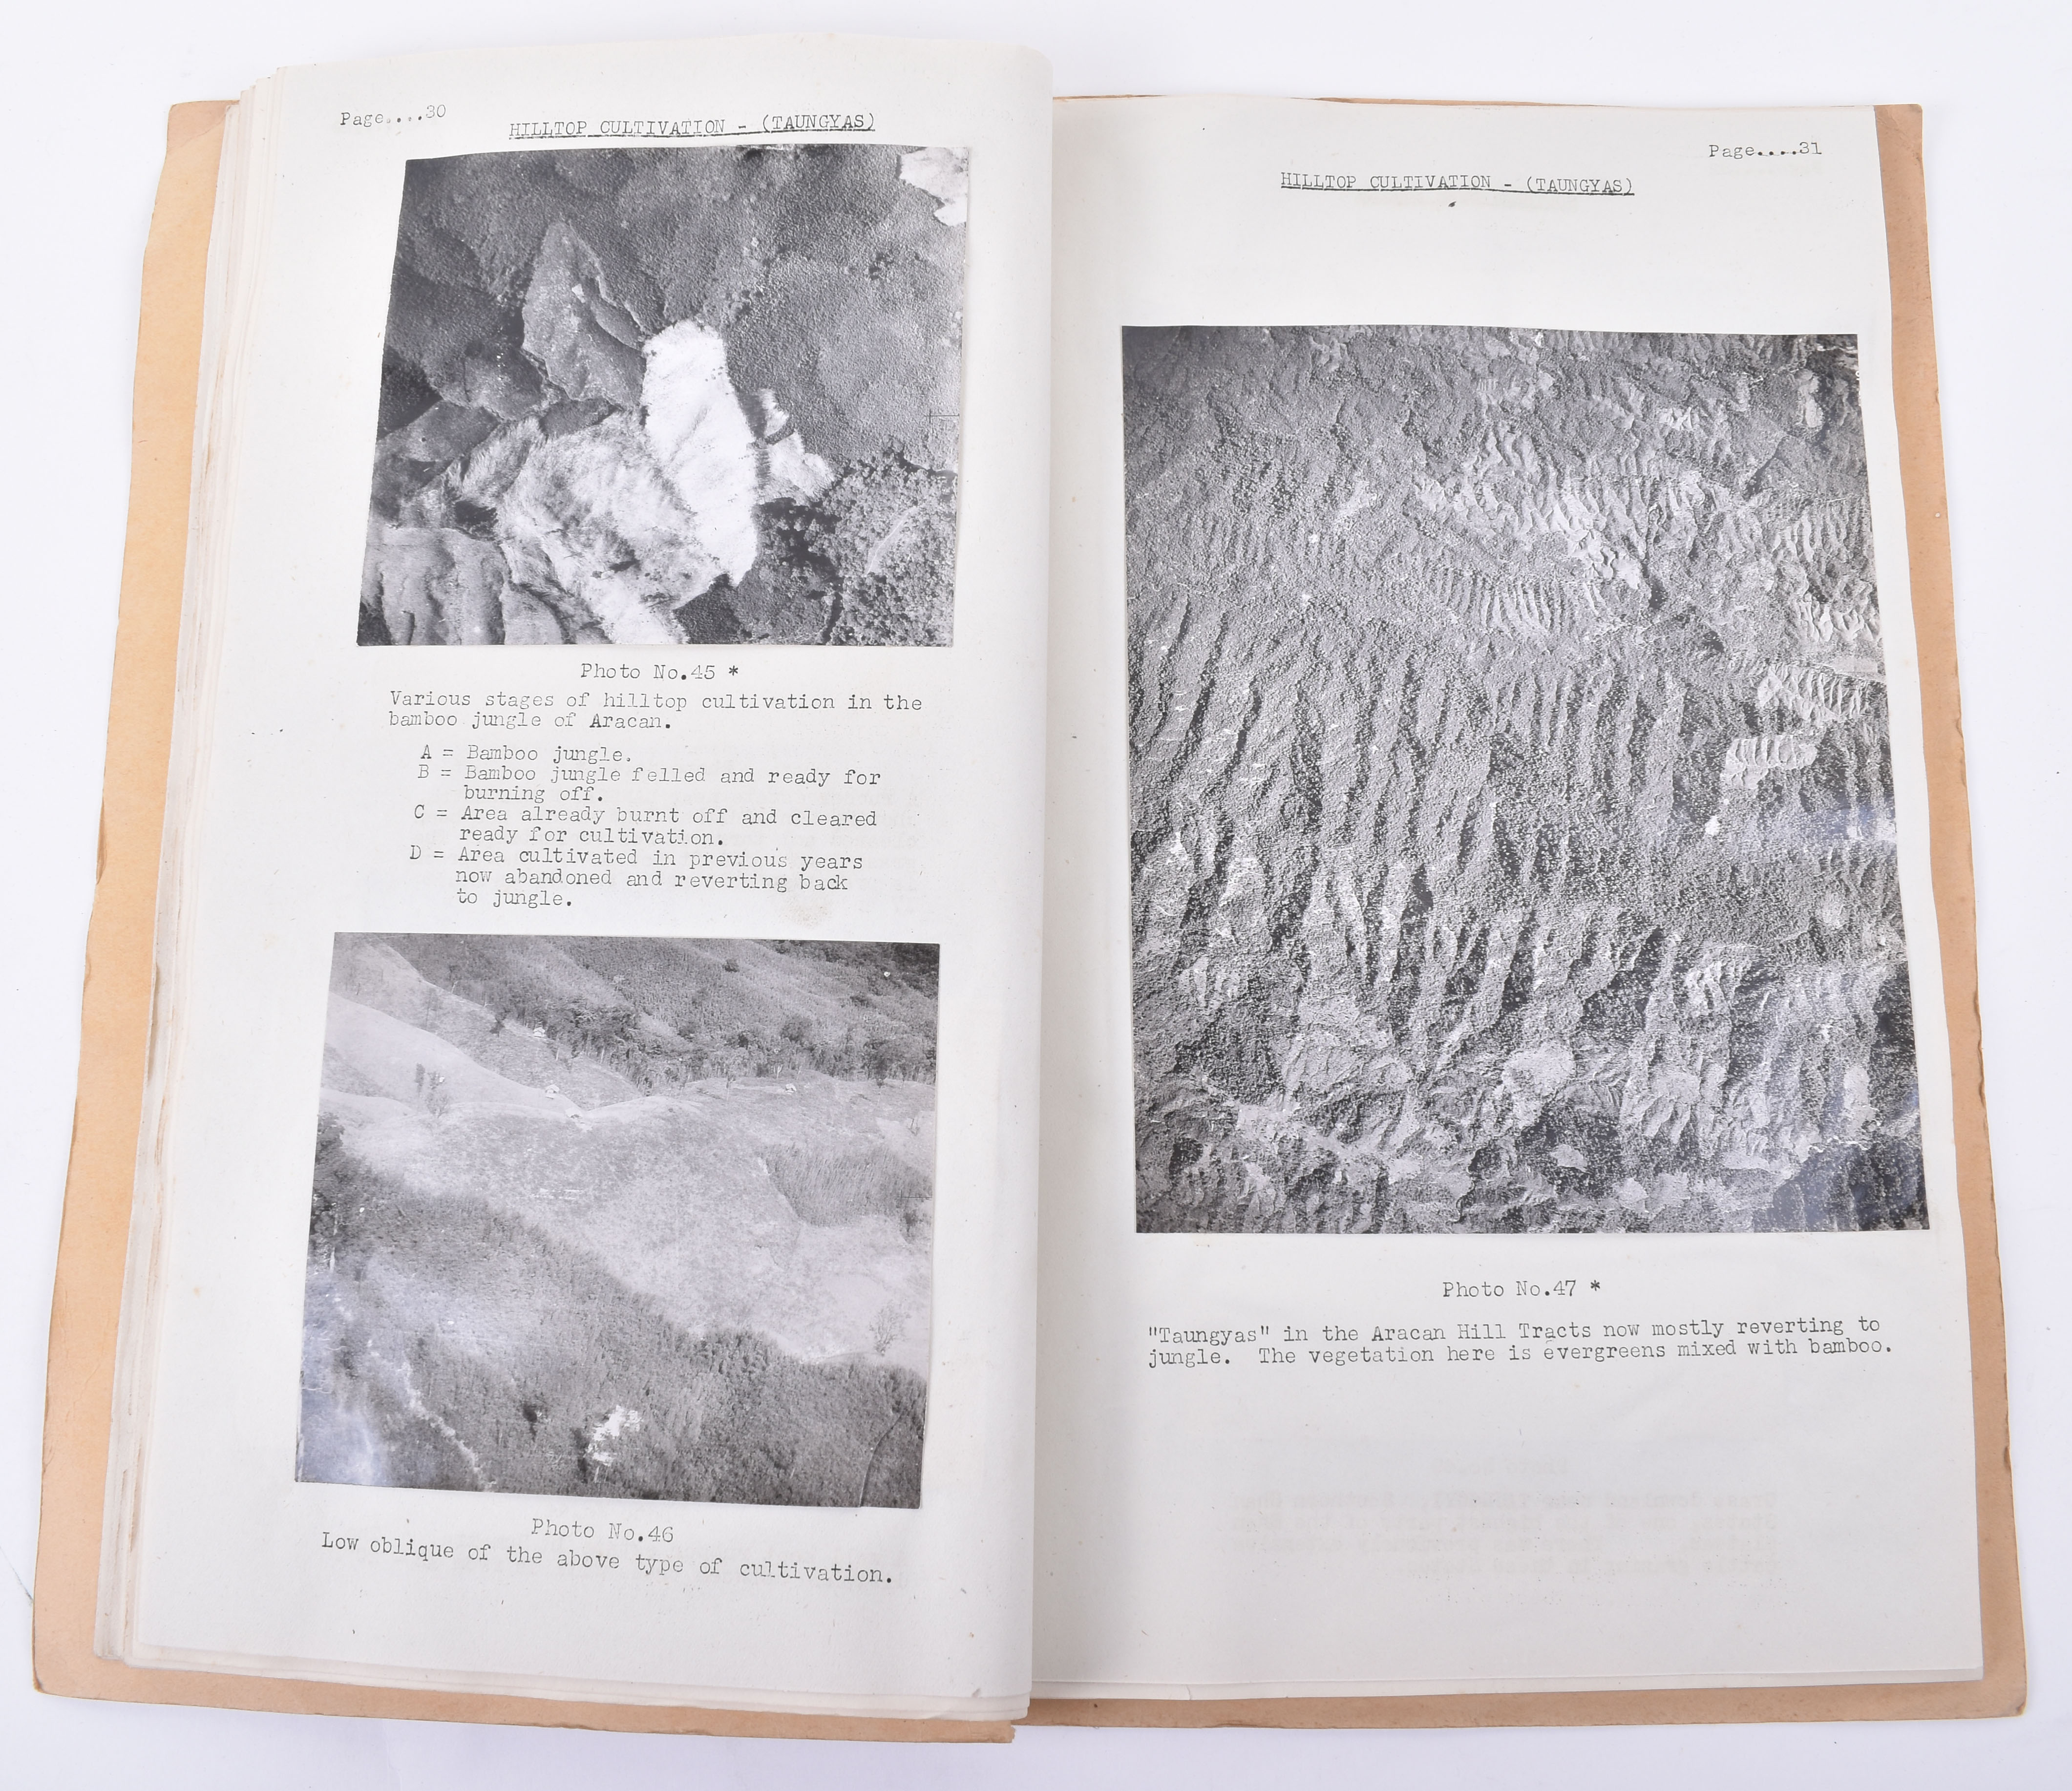 Lot 18 - Clarence Edward Brett Binns, RFC, RAF. Large Collection of his Working Reports and Aerial Photograph